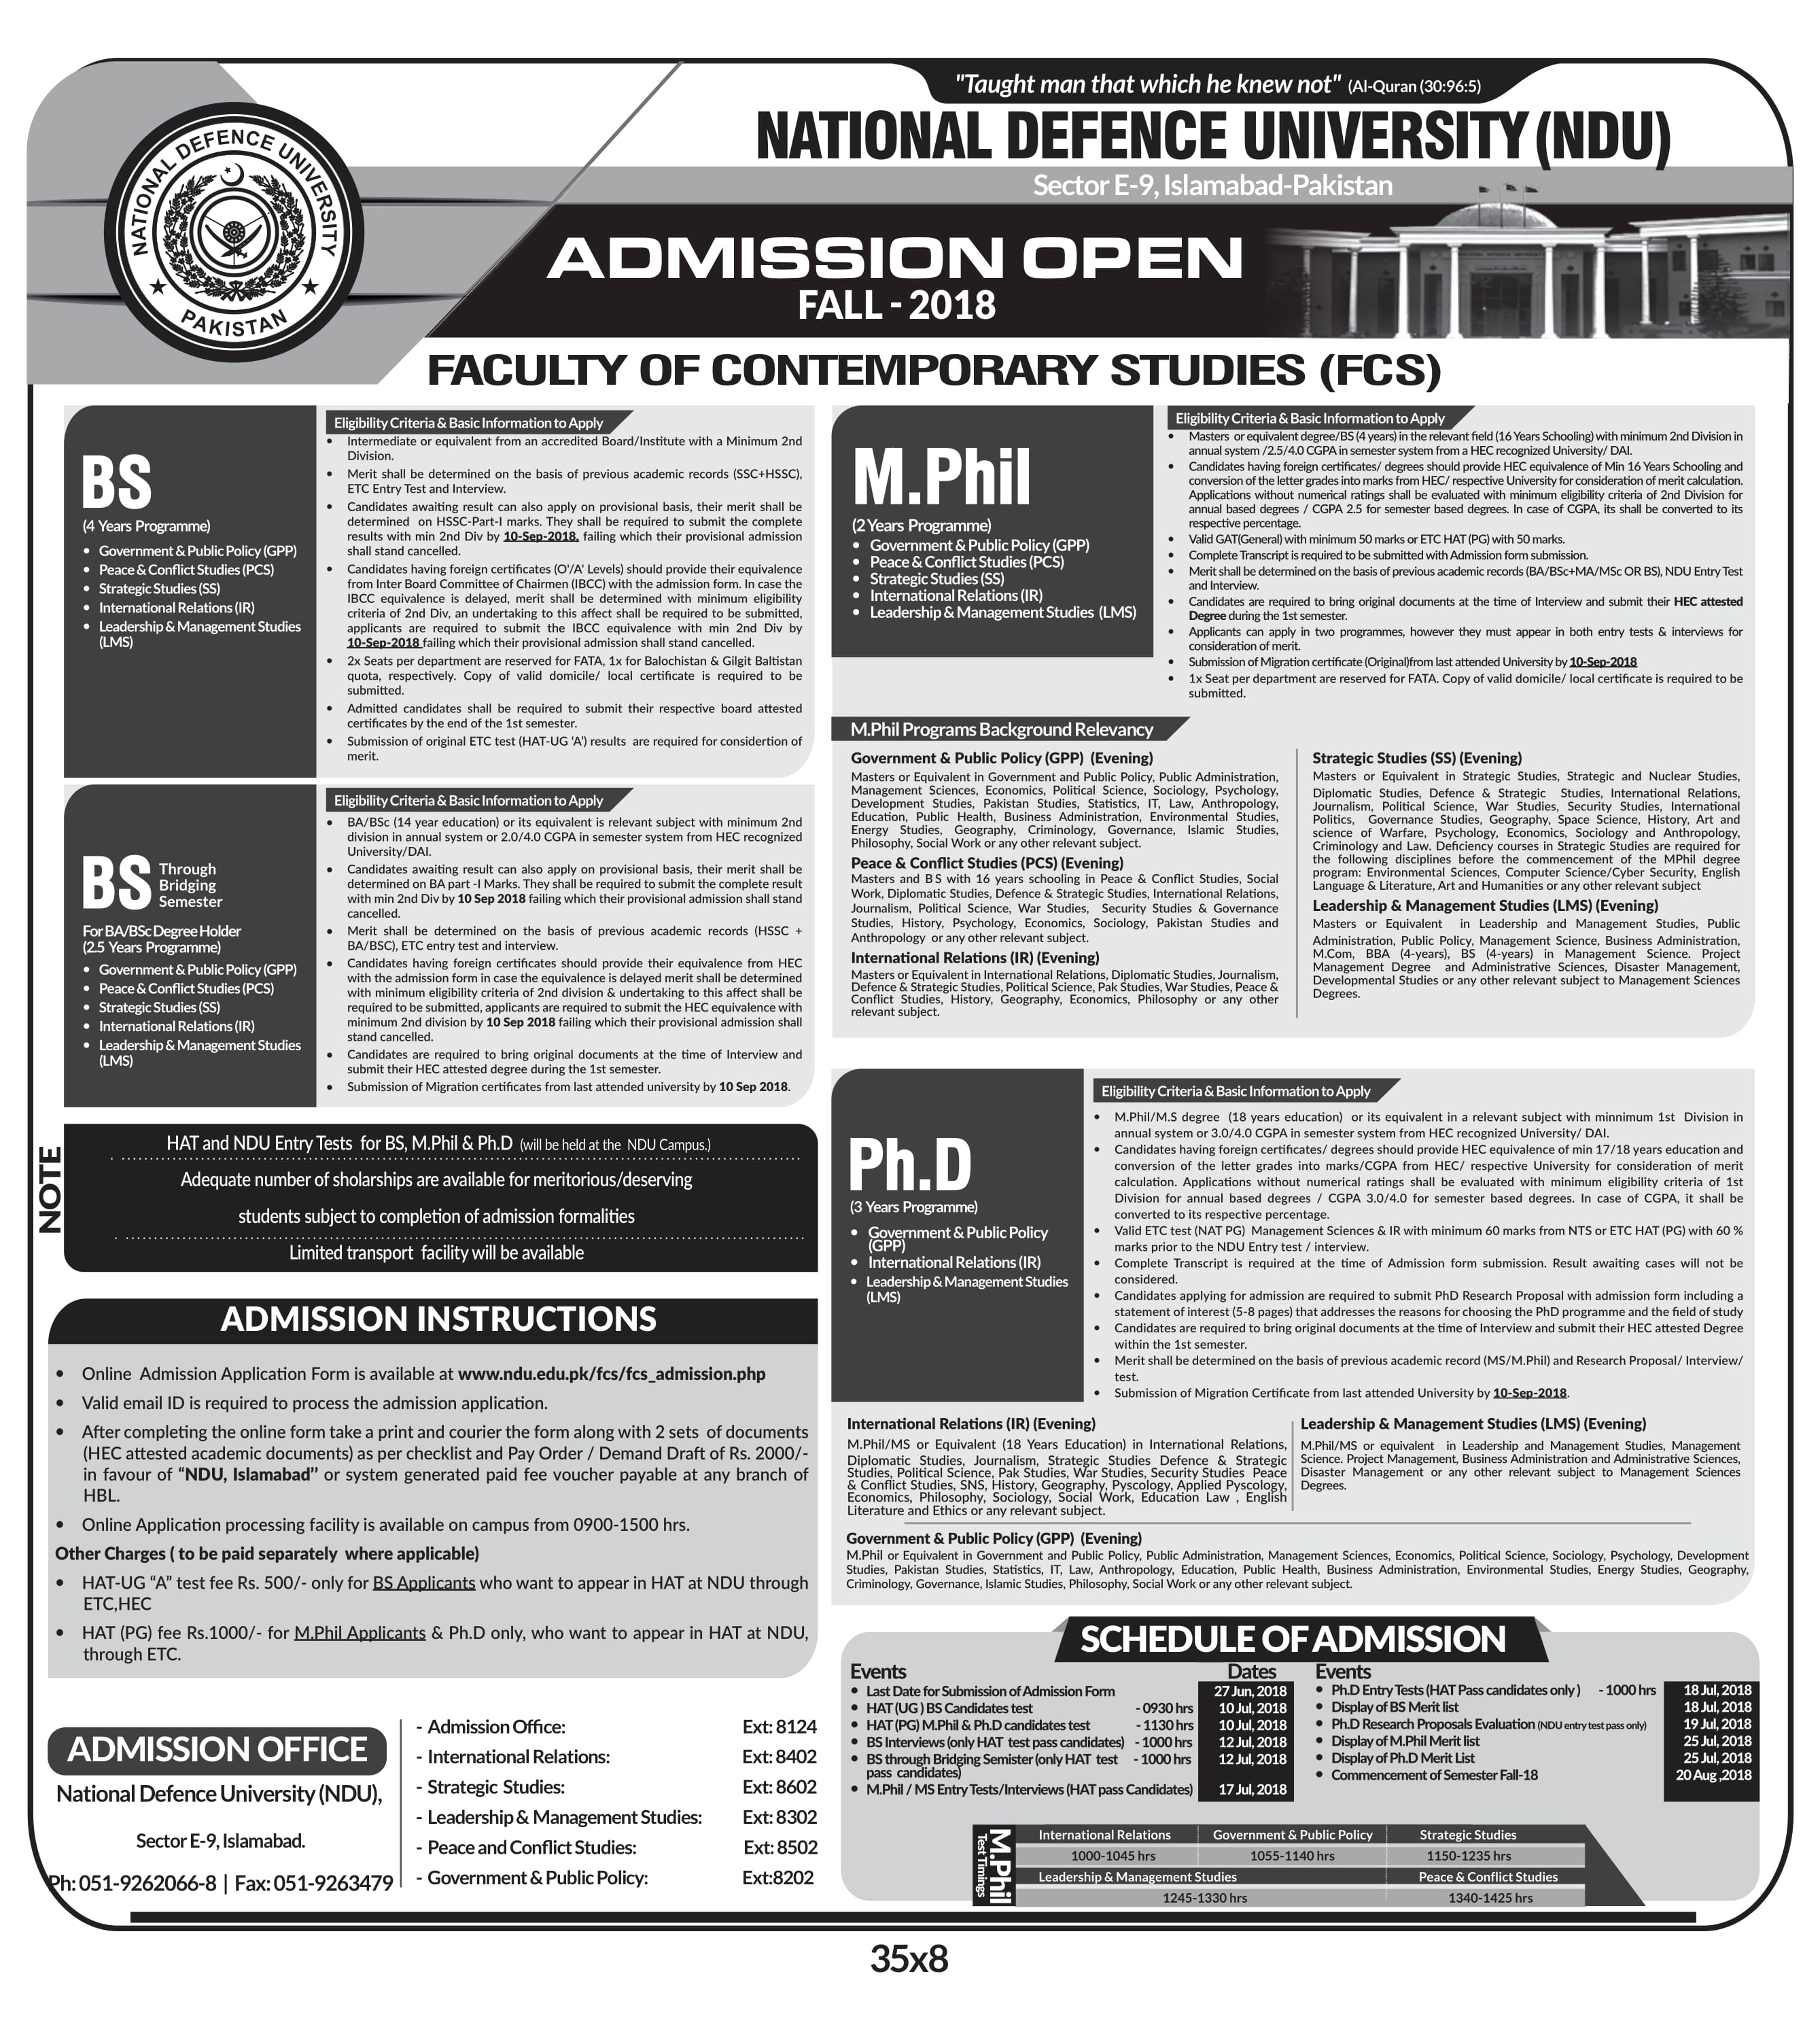 National Defence University, Islamabad (NDU) – Admission Open 2018